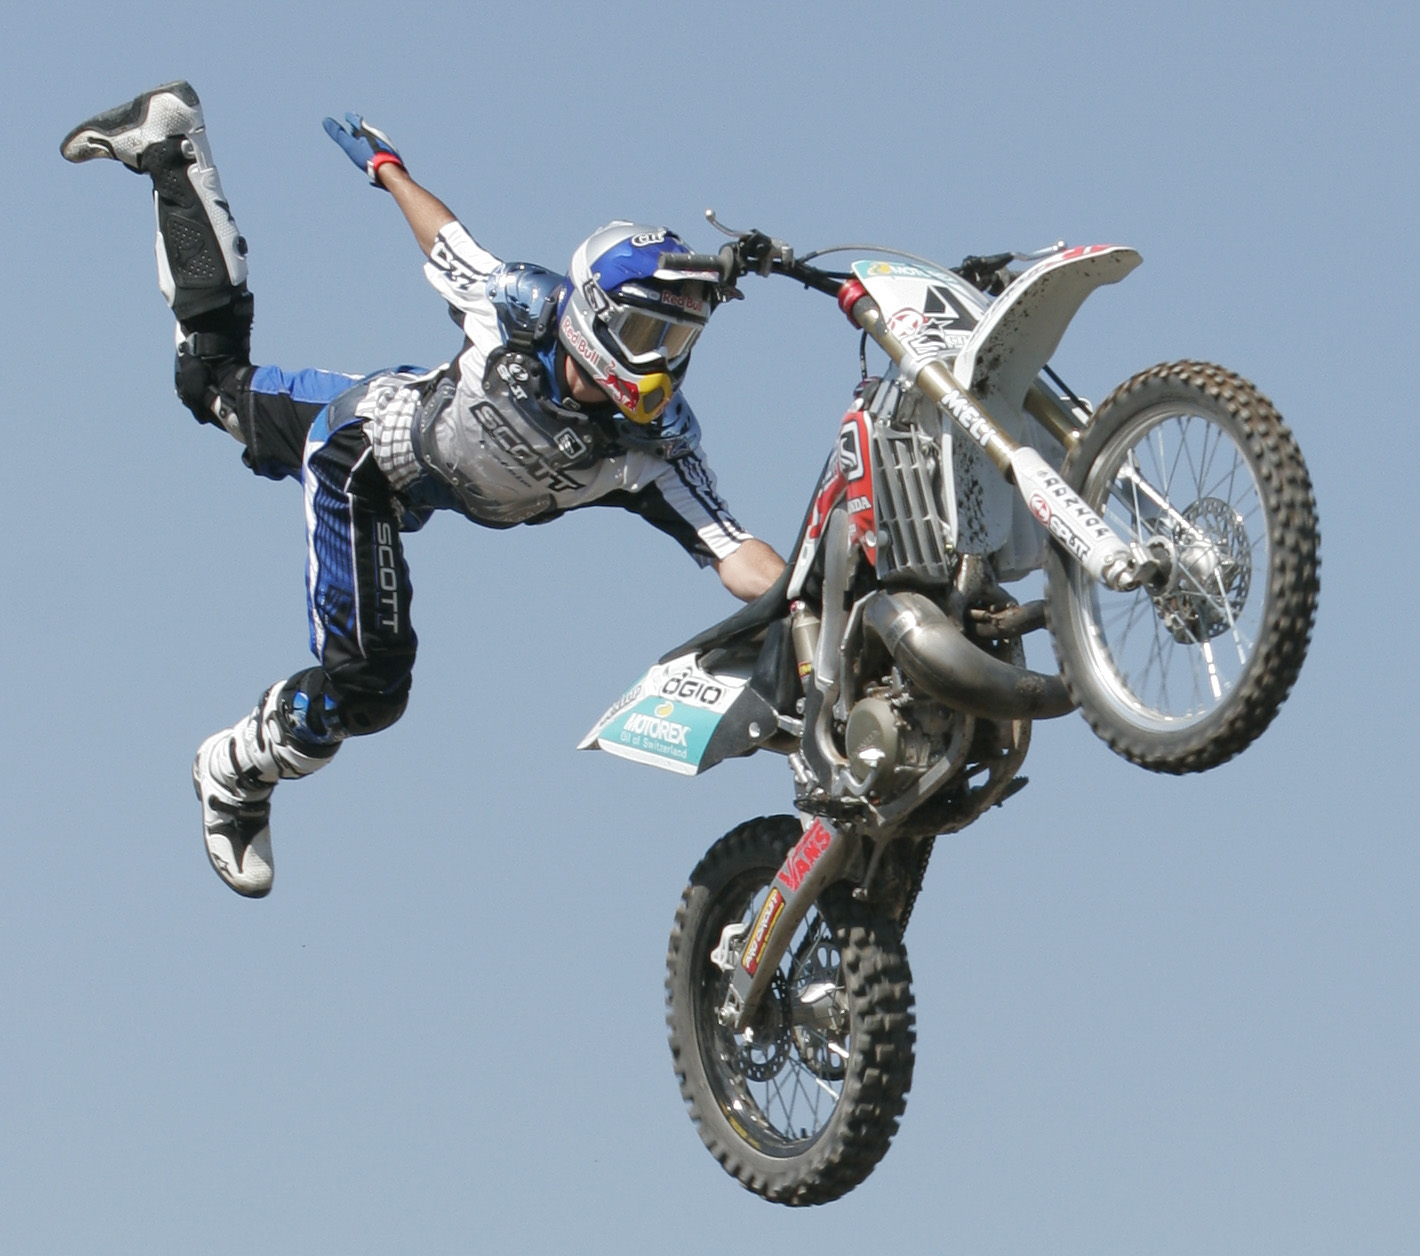 Freestyle motocross pictures | Diverse Information